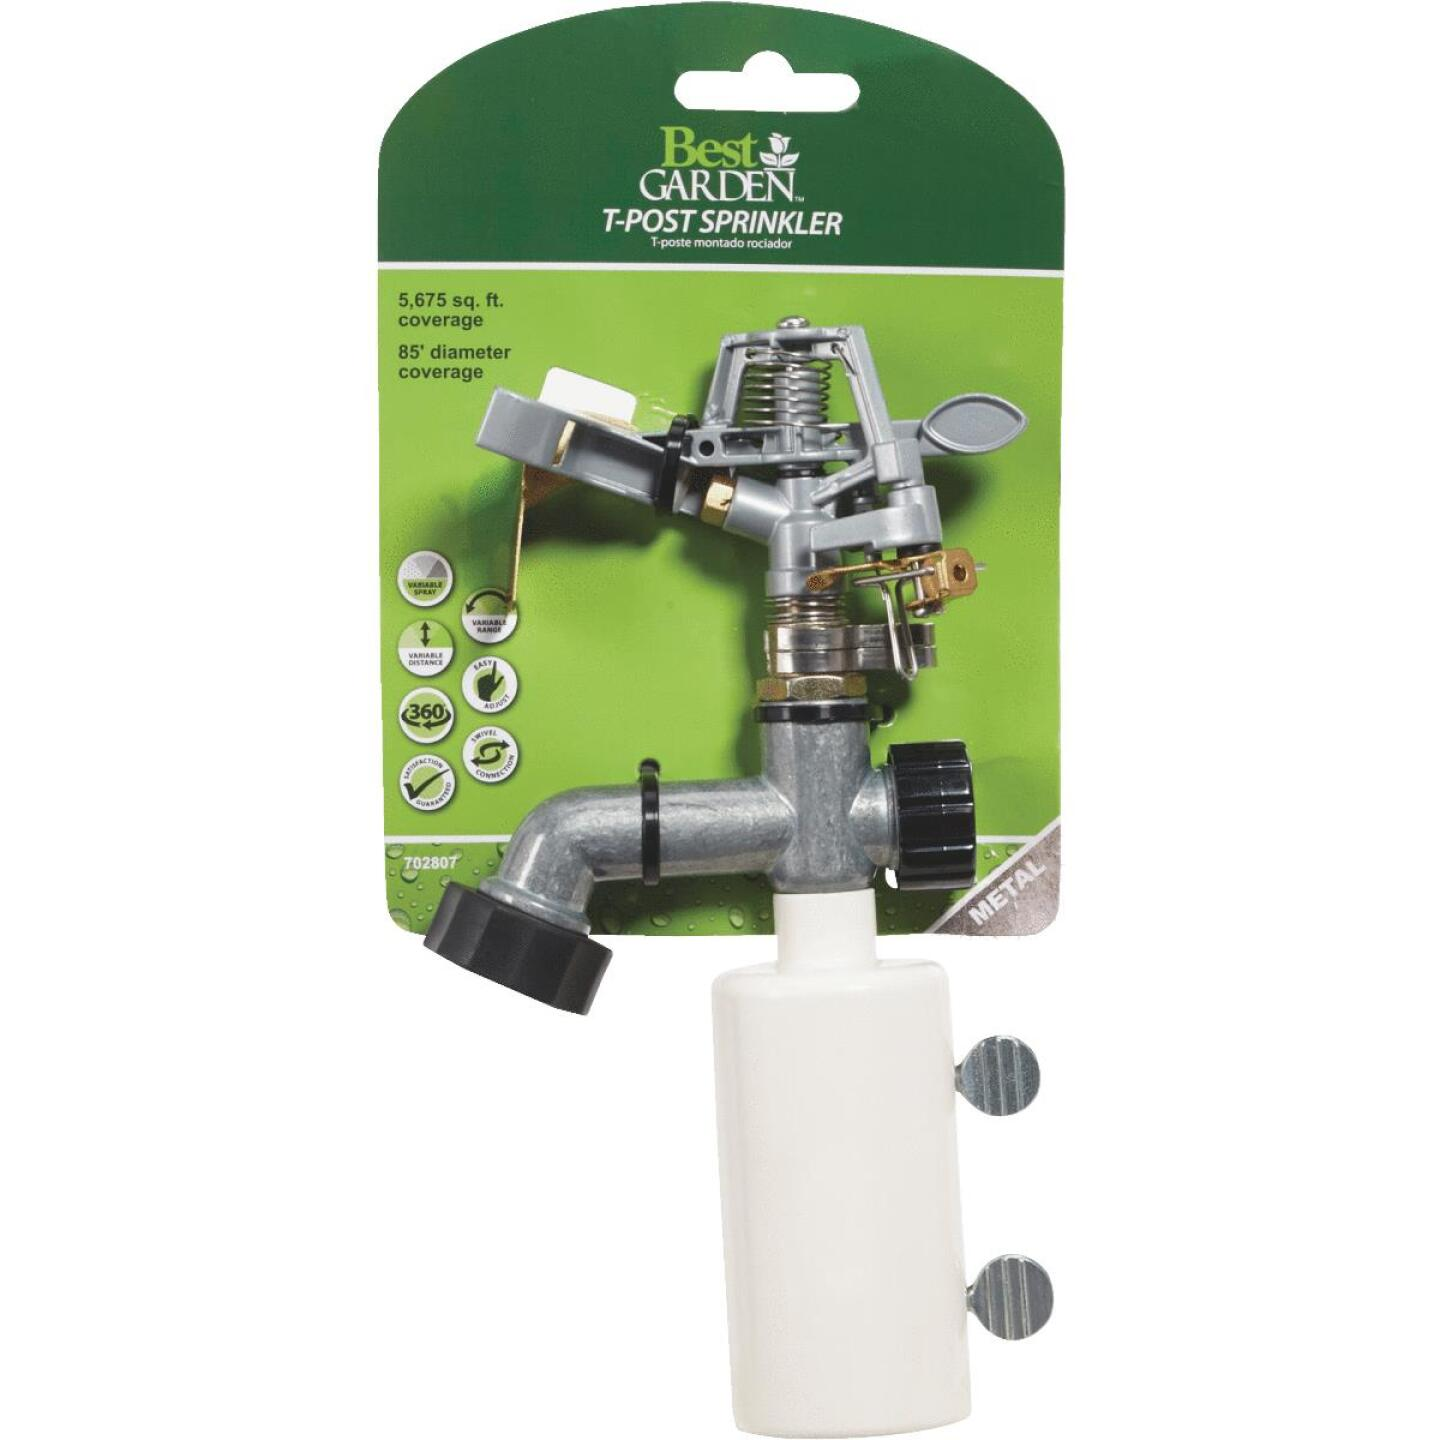 Best Garden Zinc 5675 Sq. Ft. T-Post Sprinkler Image 3